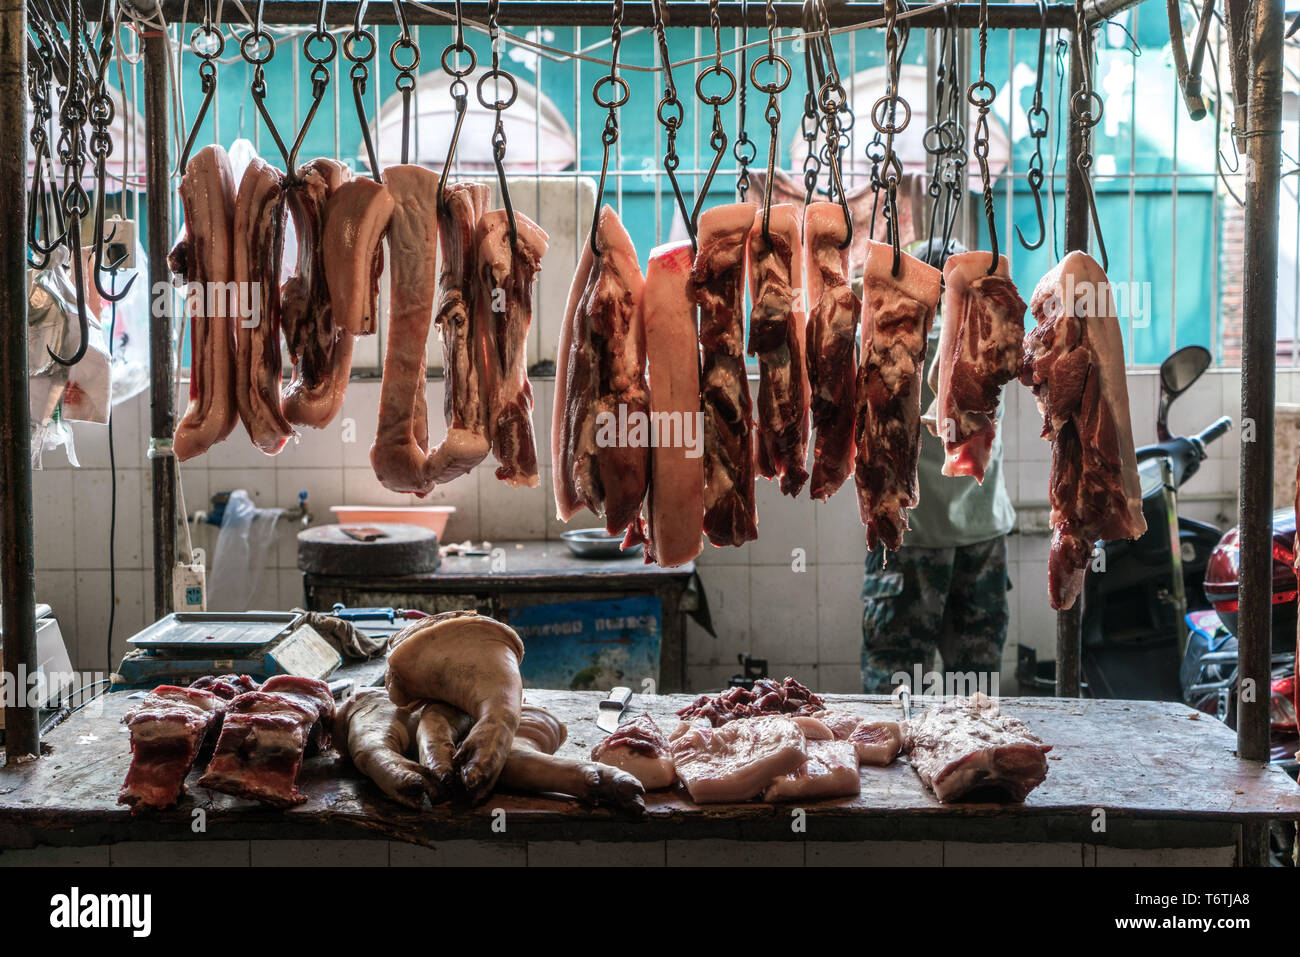 A Meat counter in China - Stock Image